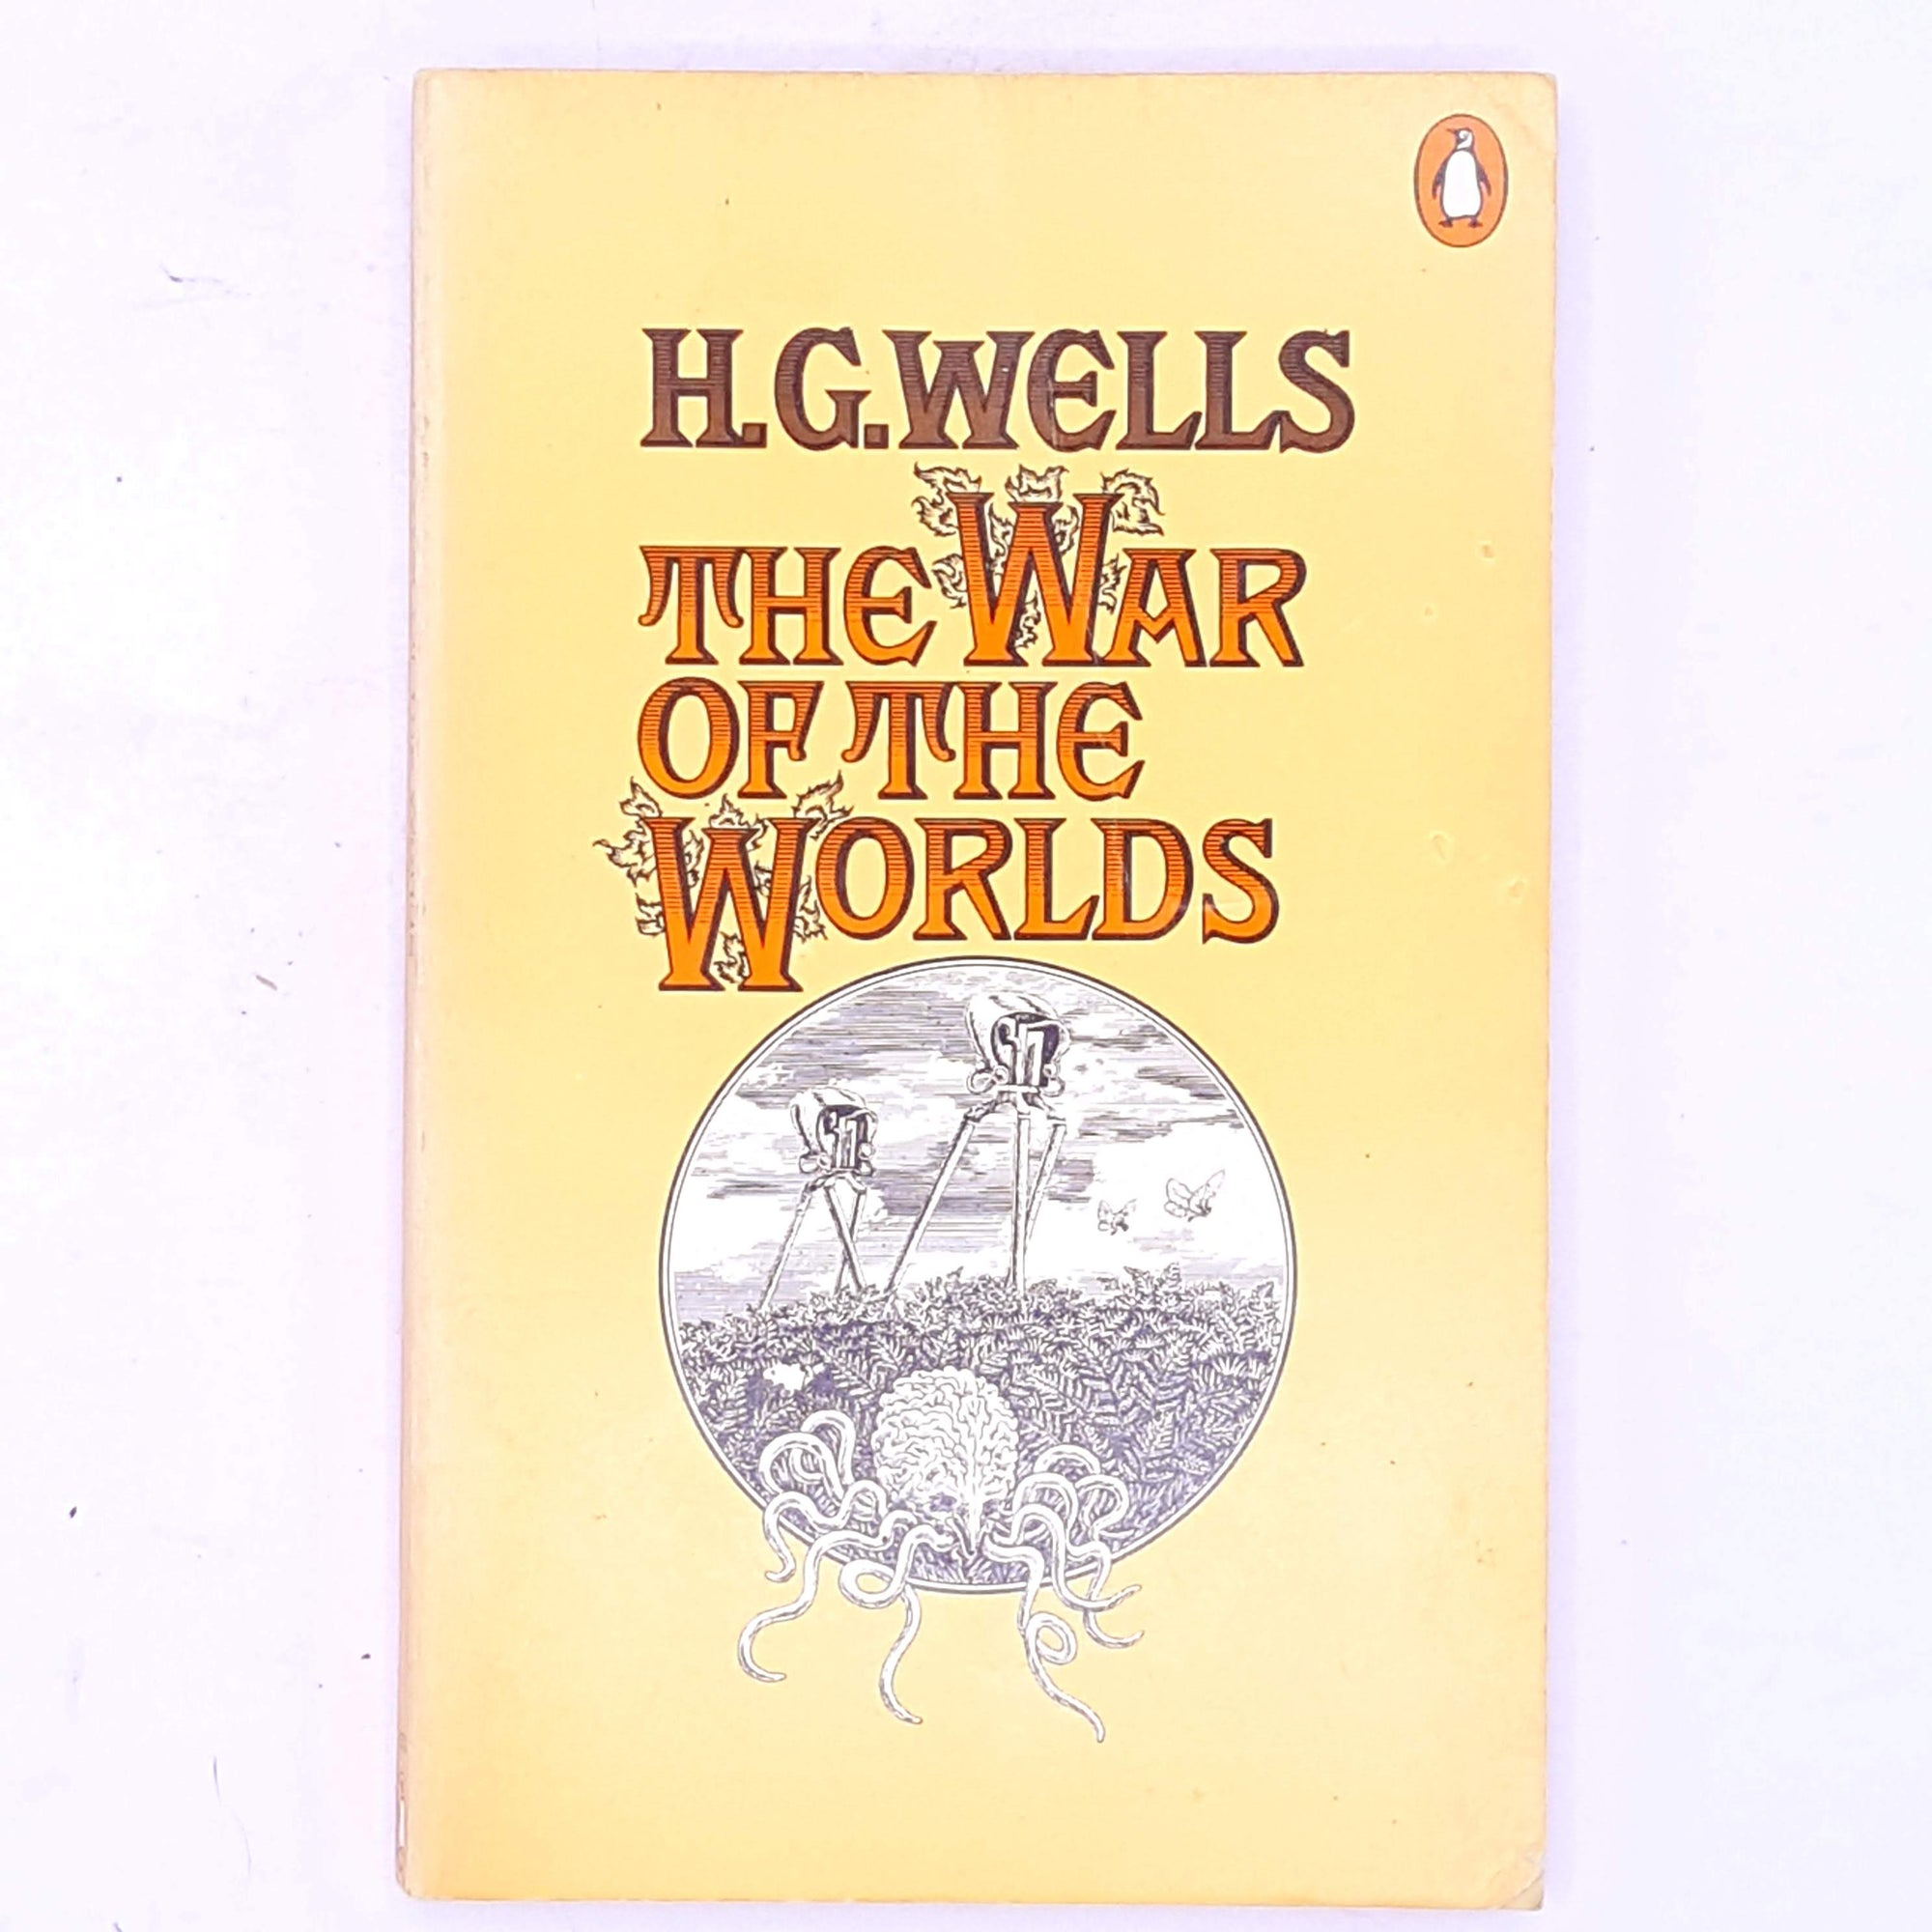 hg-wells-patterned-the-war-of-the-worlds-country-house-library-science-fiction-old-aliens-classic-books-vintage-thrift-antique-decorative-penguin-sci-fi-fantasy-